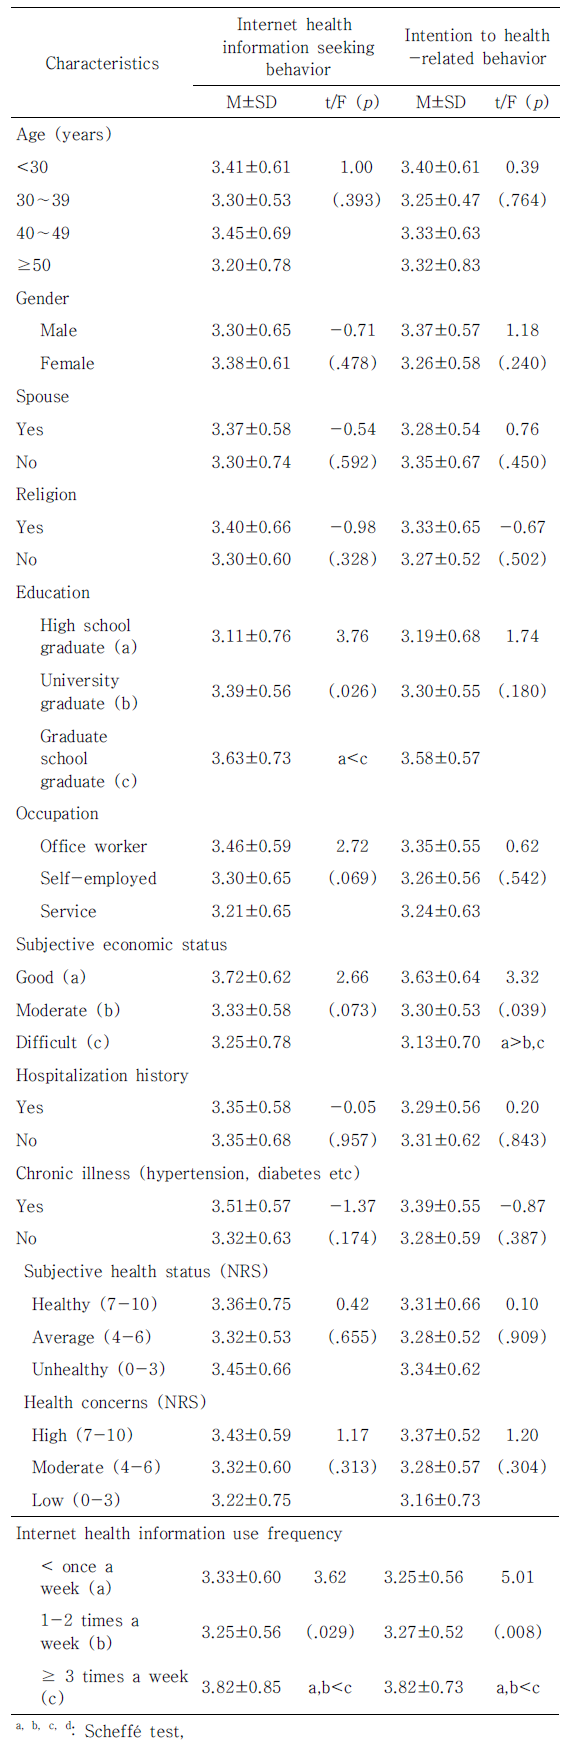 Table 3. Differences of Internet Health Information Seeking Behavior, and Intention to Health-related Behavior scores according to General Characteristics (N=152)